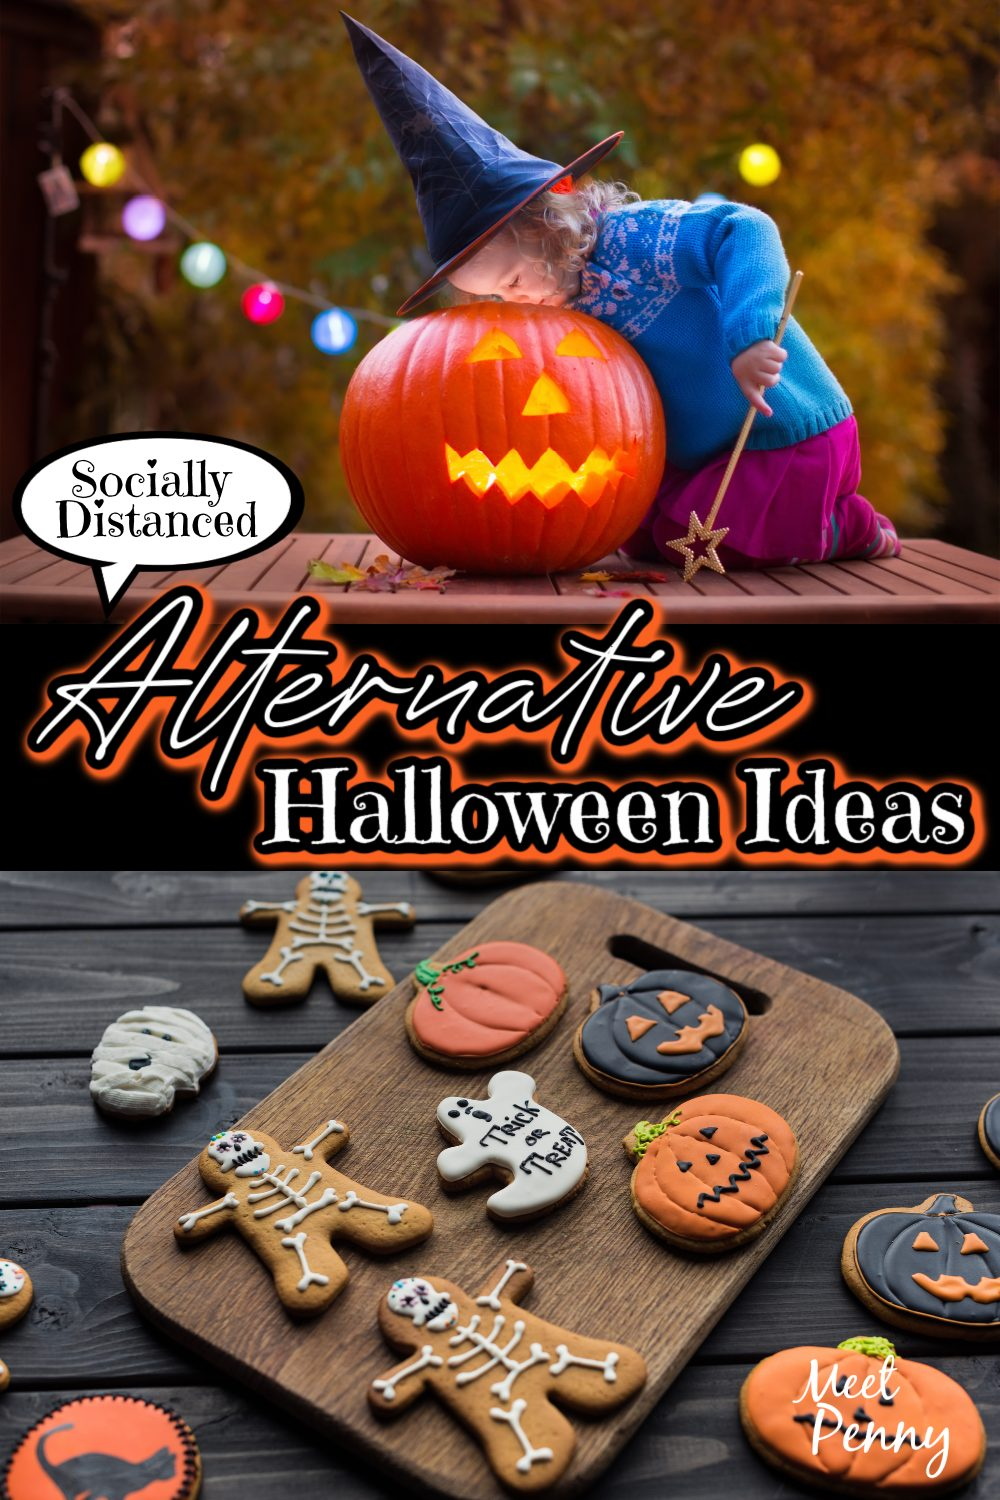 Need socially distanced alternative Halloween ideas during the COVID pandemic? These are so fun they might become your new Halloween family traditions.